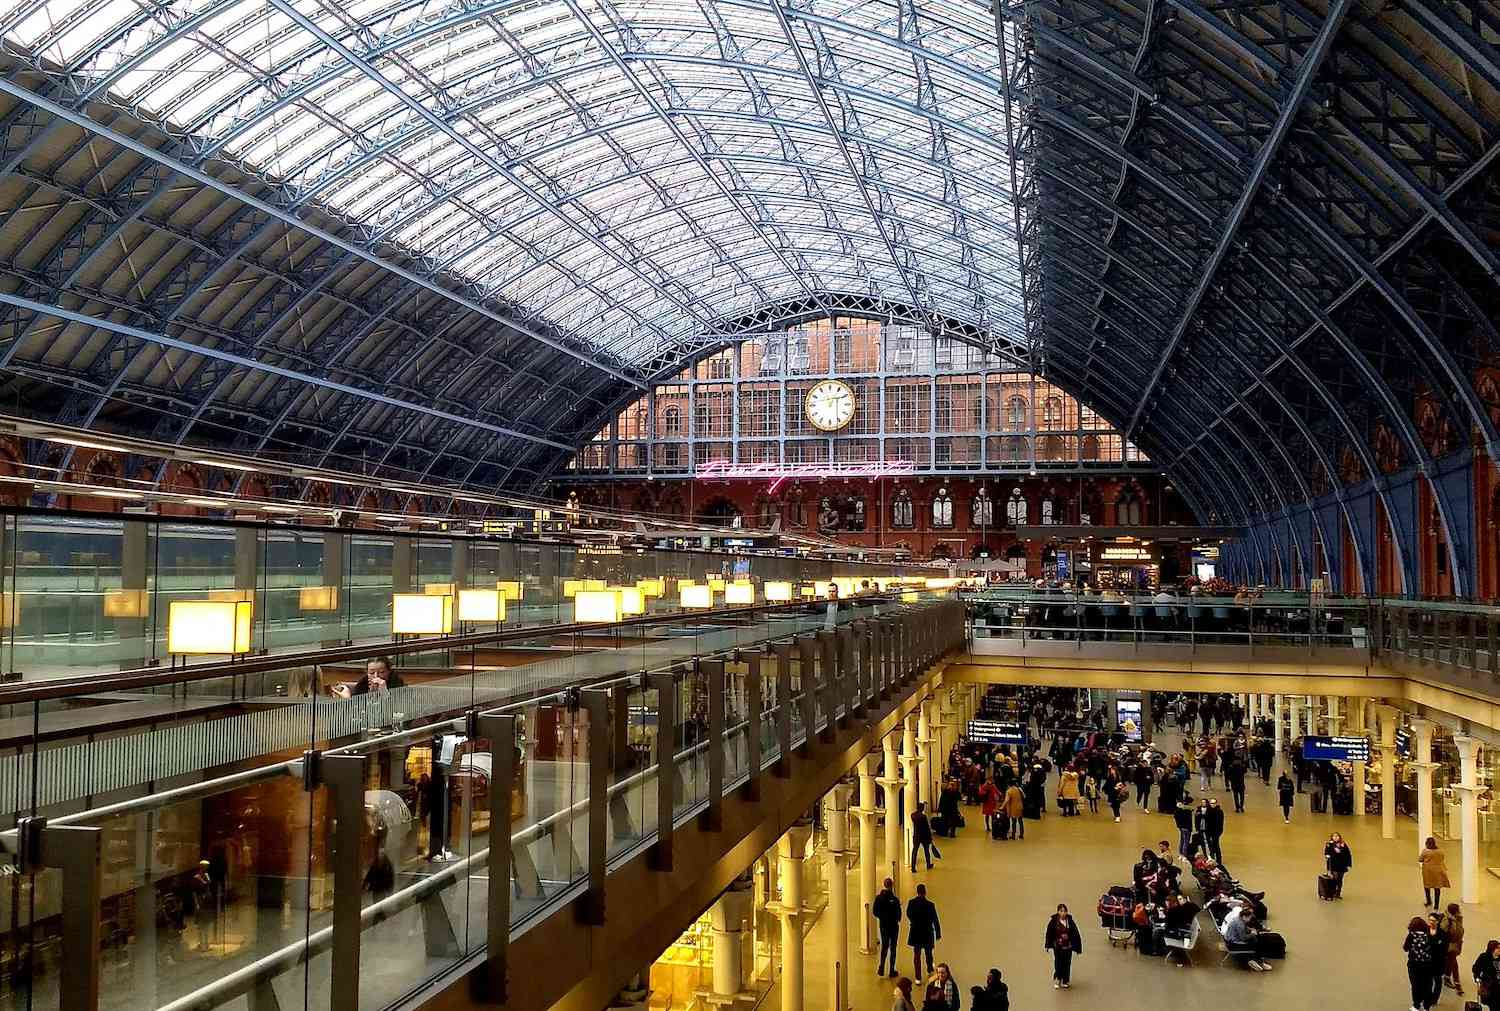 The arched-glass concourse of St. Pancras Station